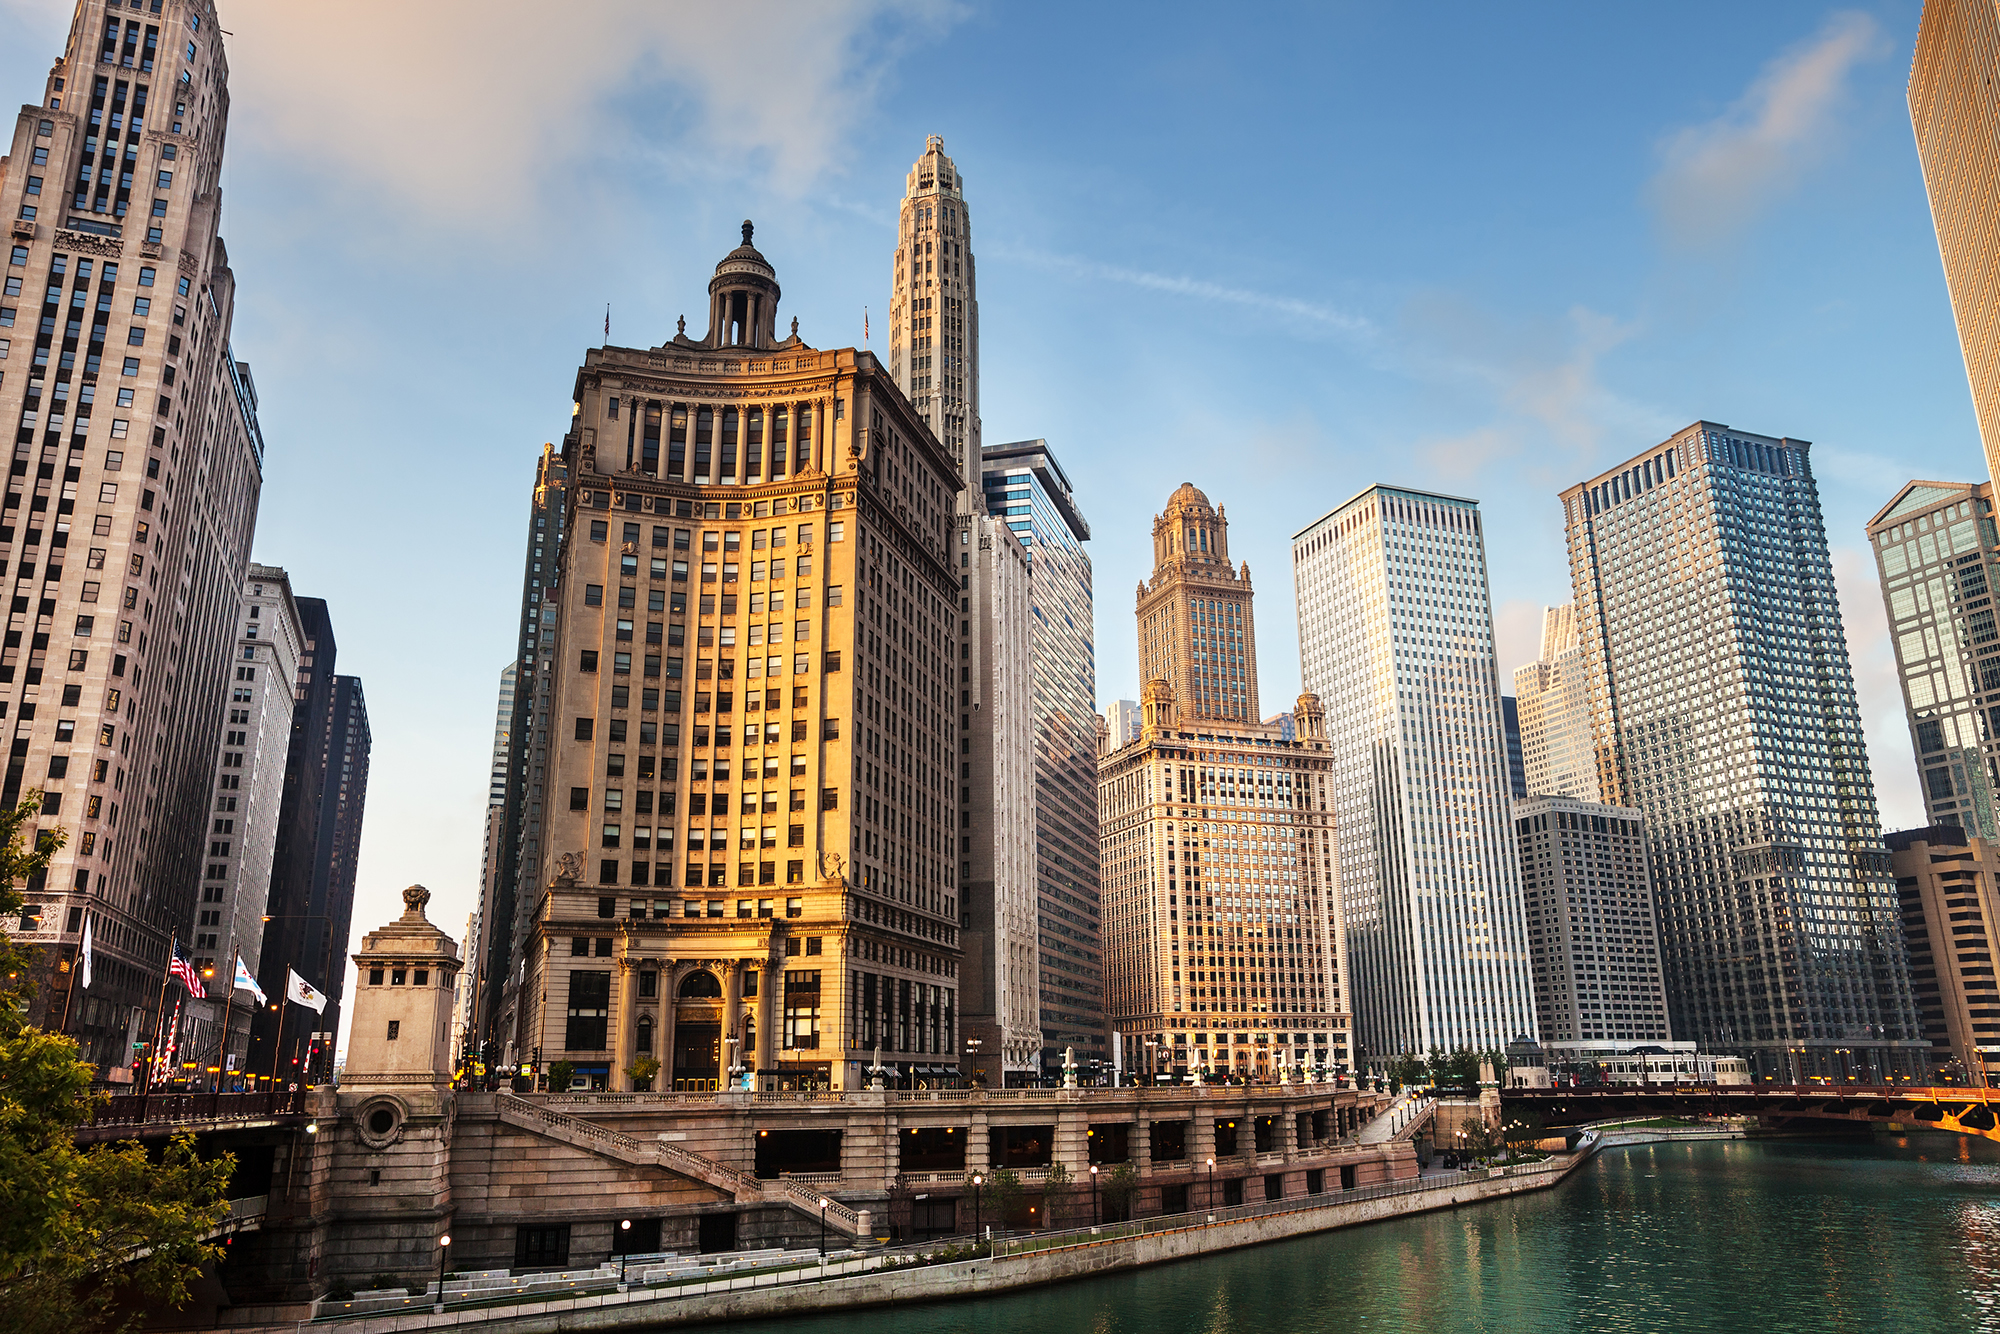 Early Morning, just after sunrise,  downtown Chicago. Wacker Drive on the Chicago River. Left is Michigan Avenue Bridge. Left to right are the London Guarantee and Accident Building, Mather Tower, Jewelers Building, and Unitrin Building. One or two background people.